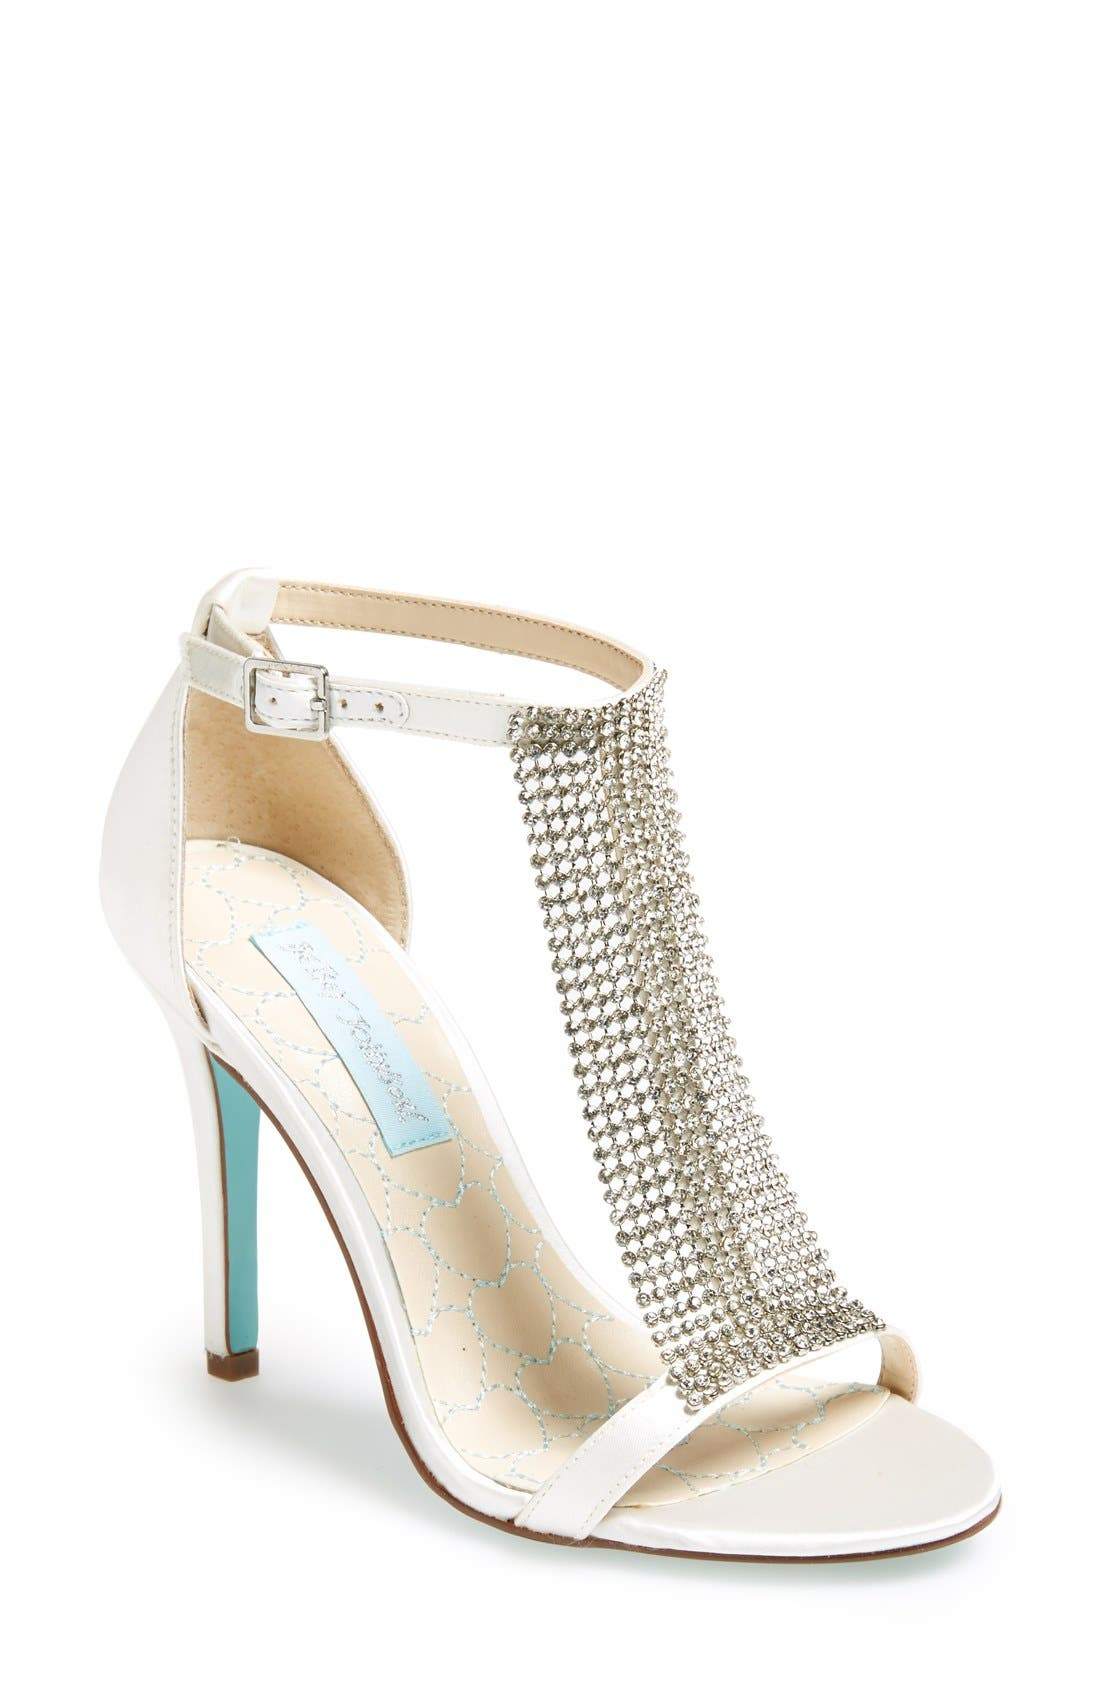 Alternate Image 1 Selected - Blue by Betsey Johnson 'Mesh' Sandal (Women)